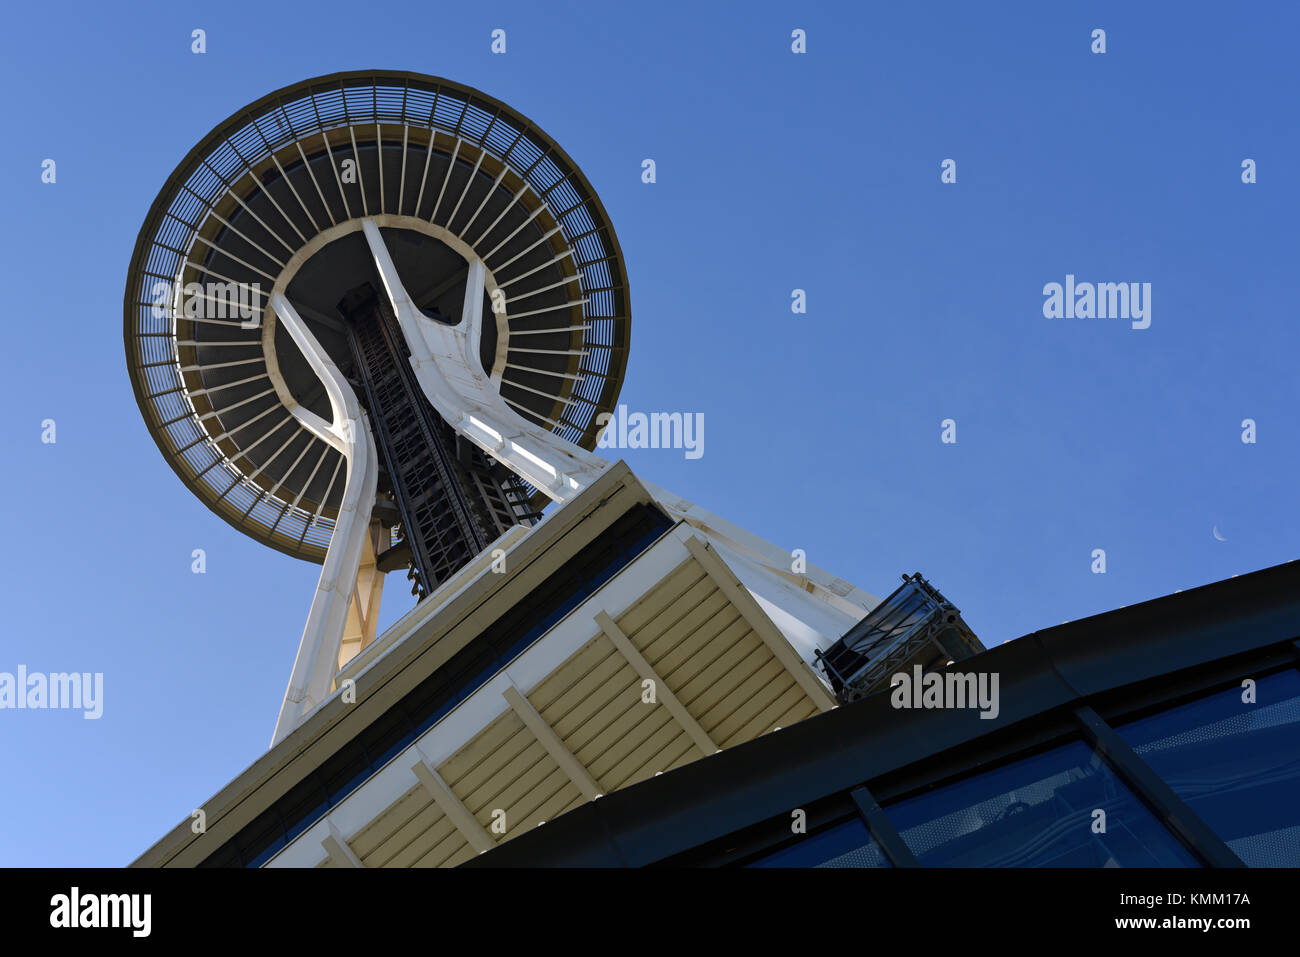 The Seattle Space Needle Observation Tower, Washington State, USA - Stock Image